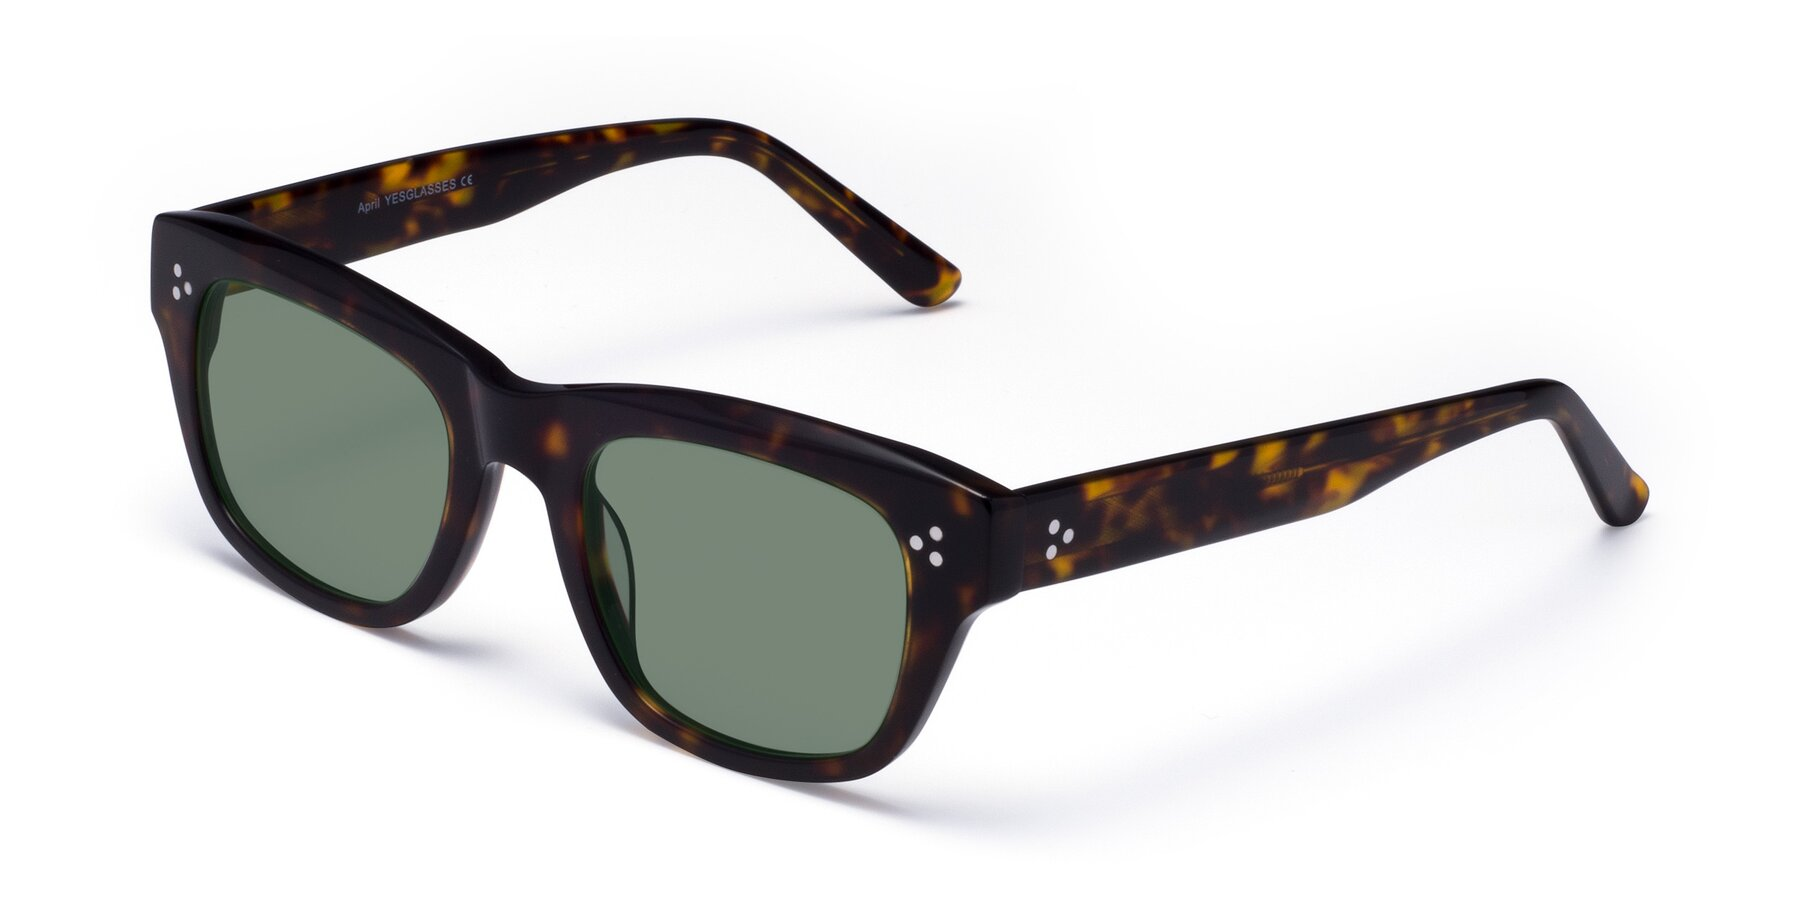 Angle of April in Tortoise with Medium Green Tinted Lenses